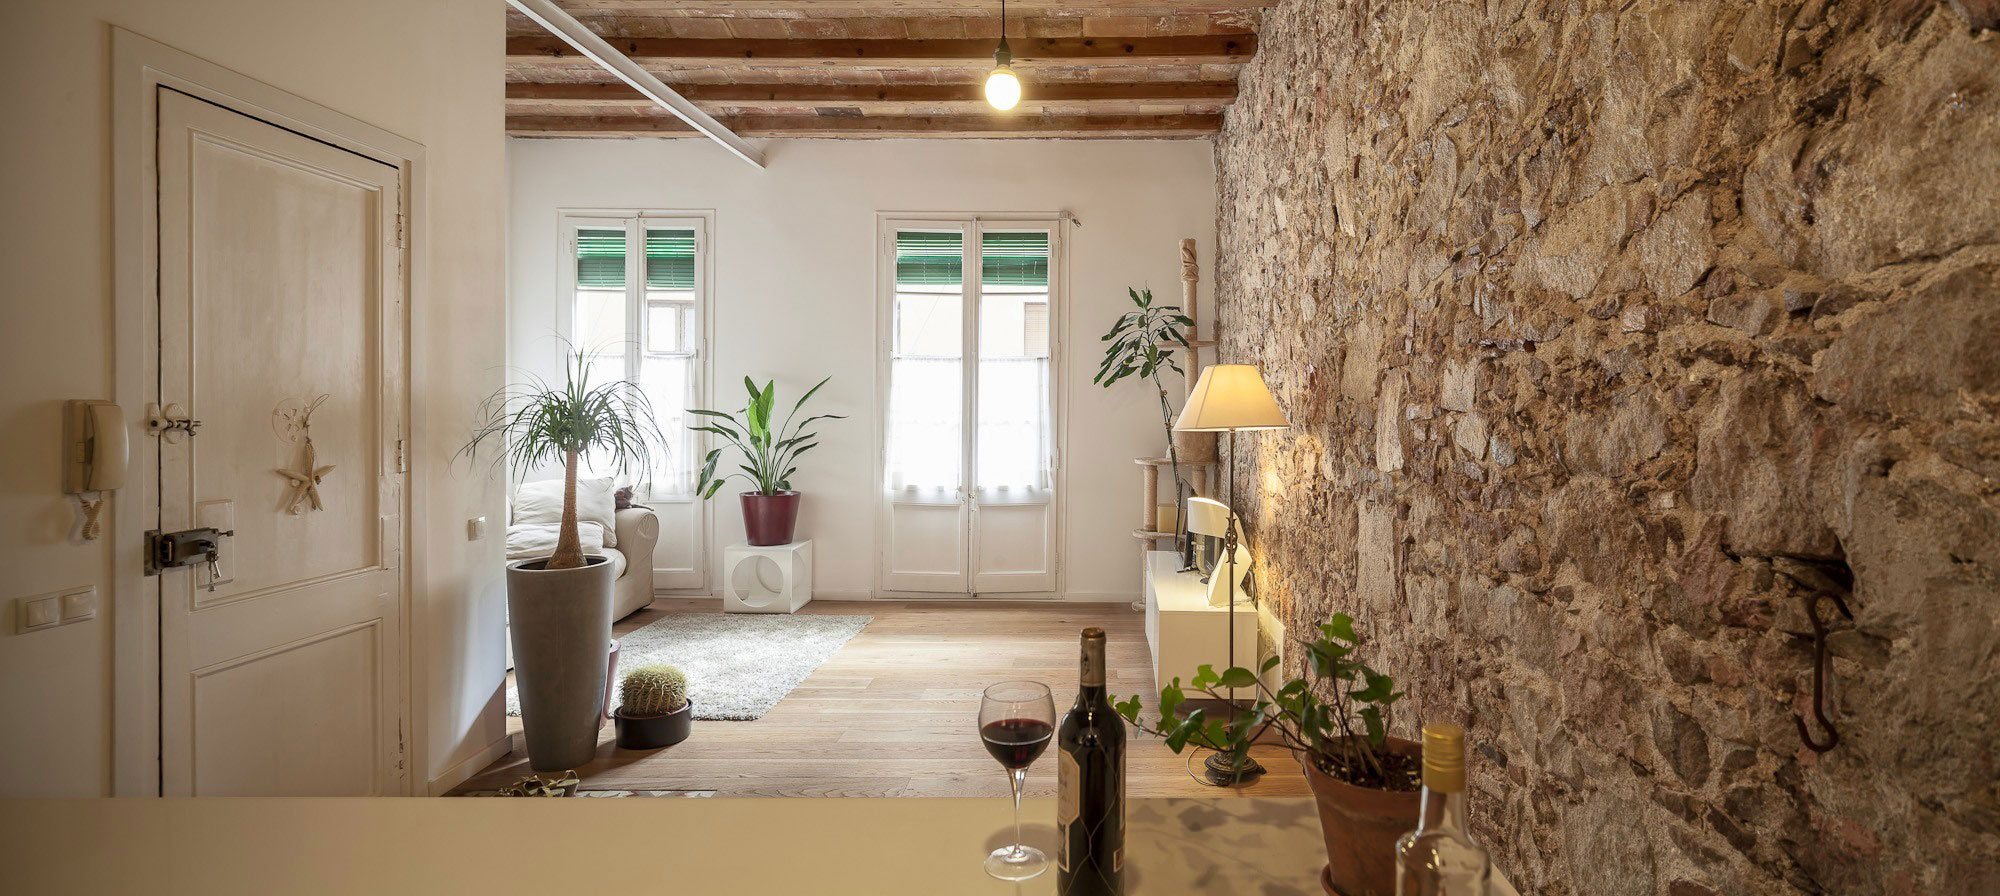 Renovation Apartment in Les Corts living room windows